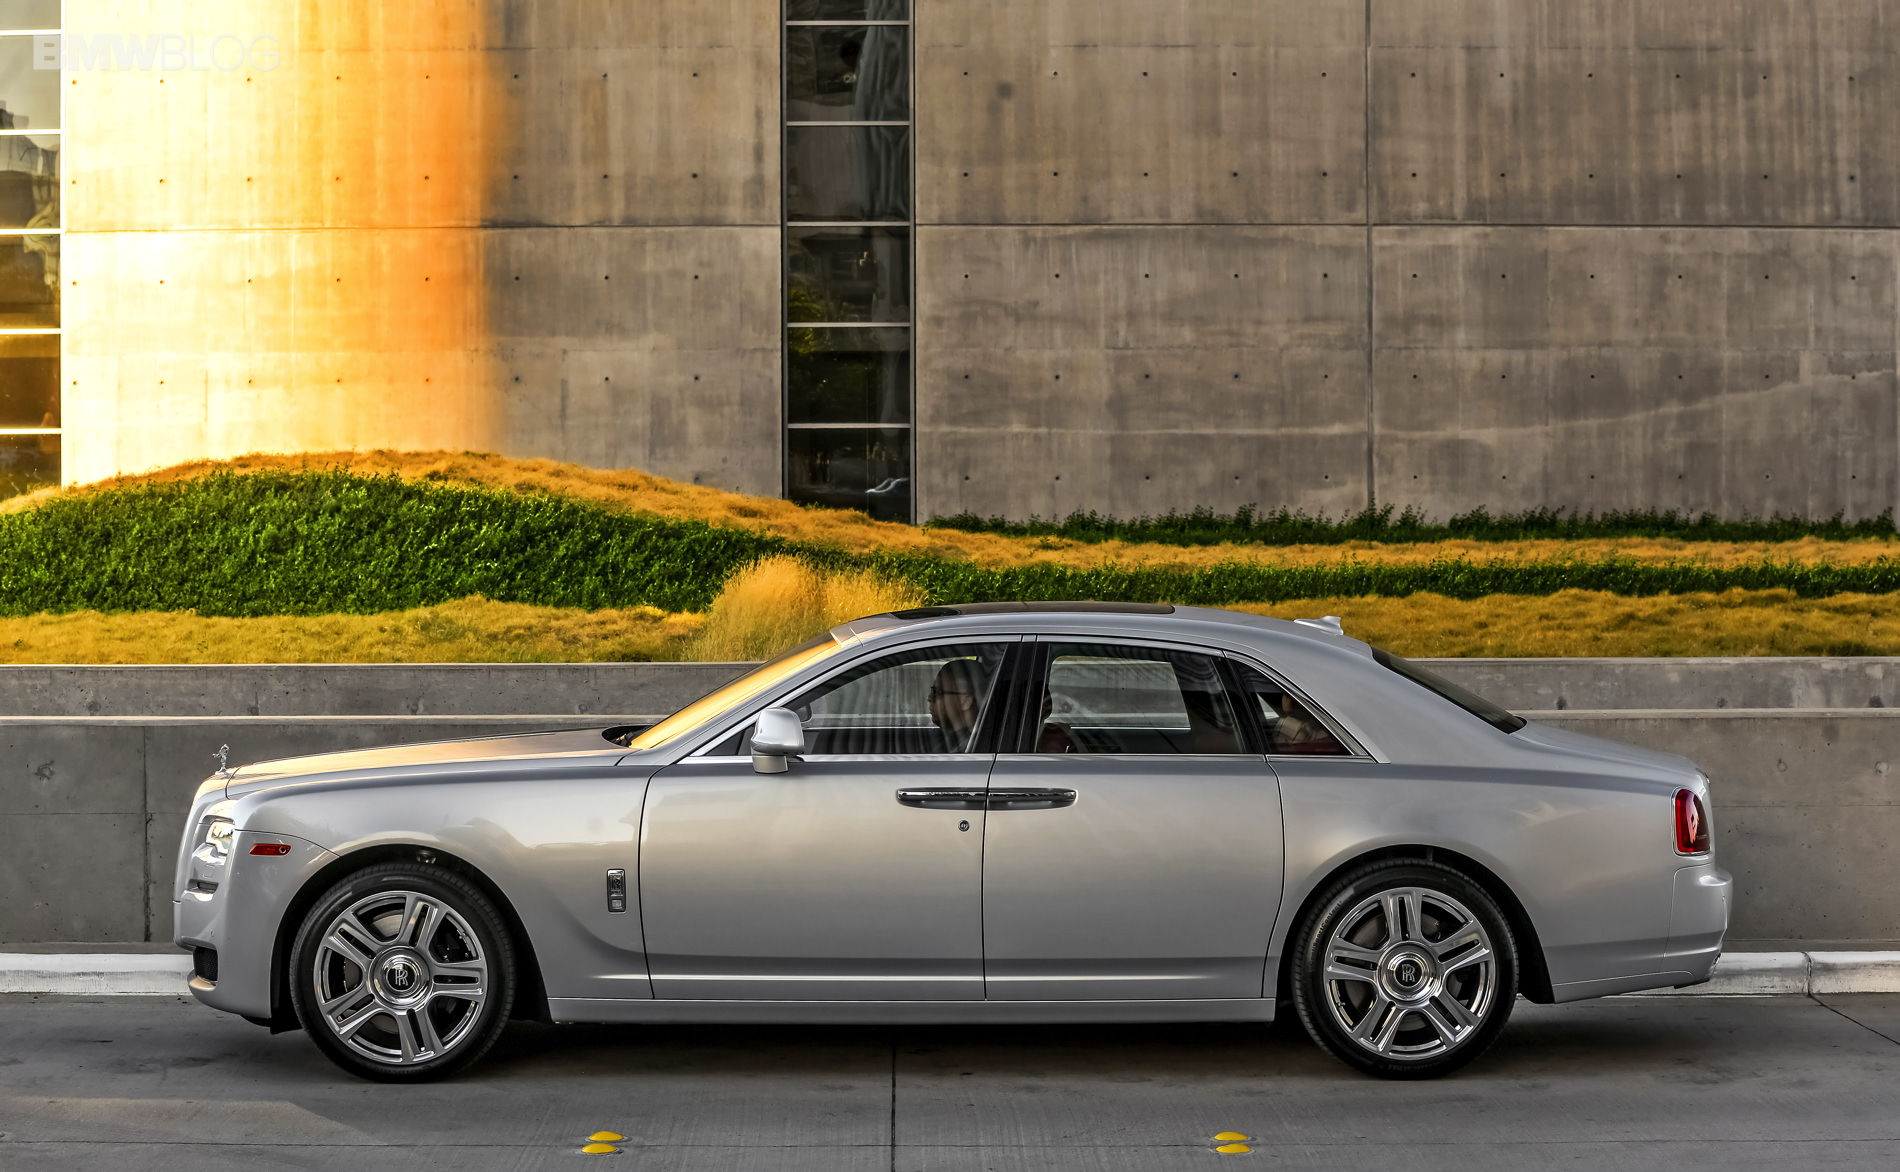 2015 Rolls royce Ghost Series Ii #15